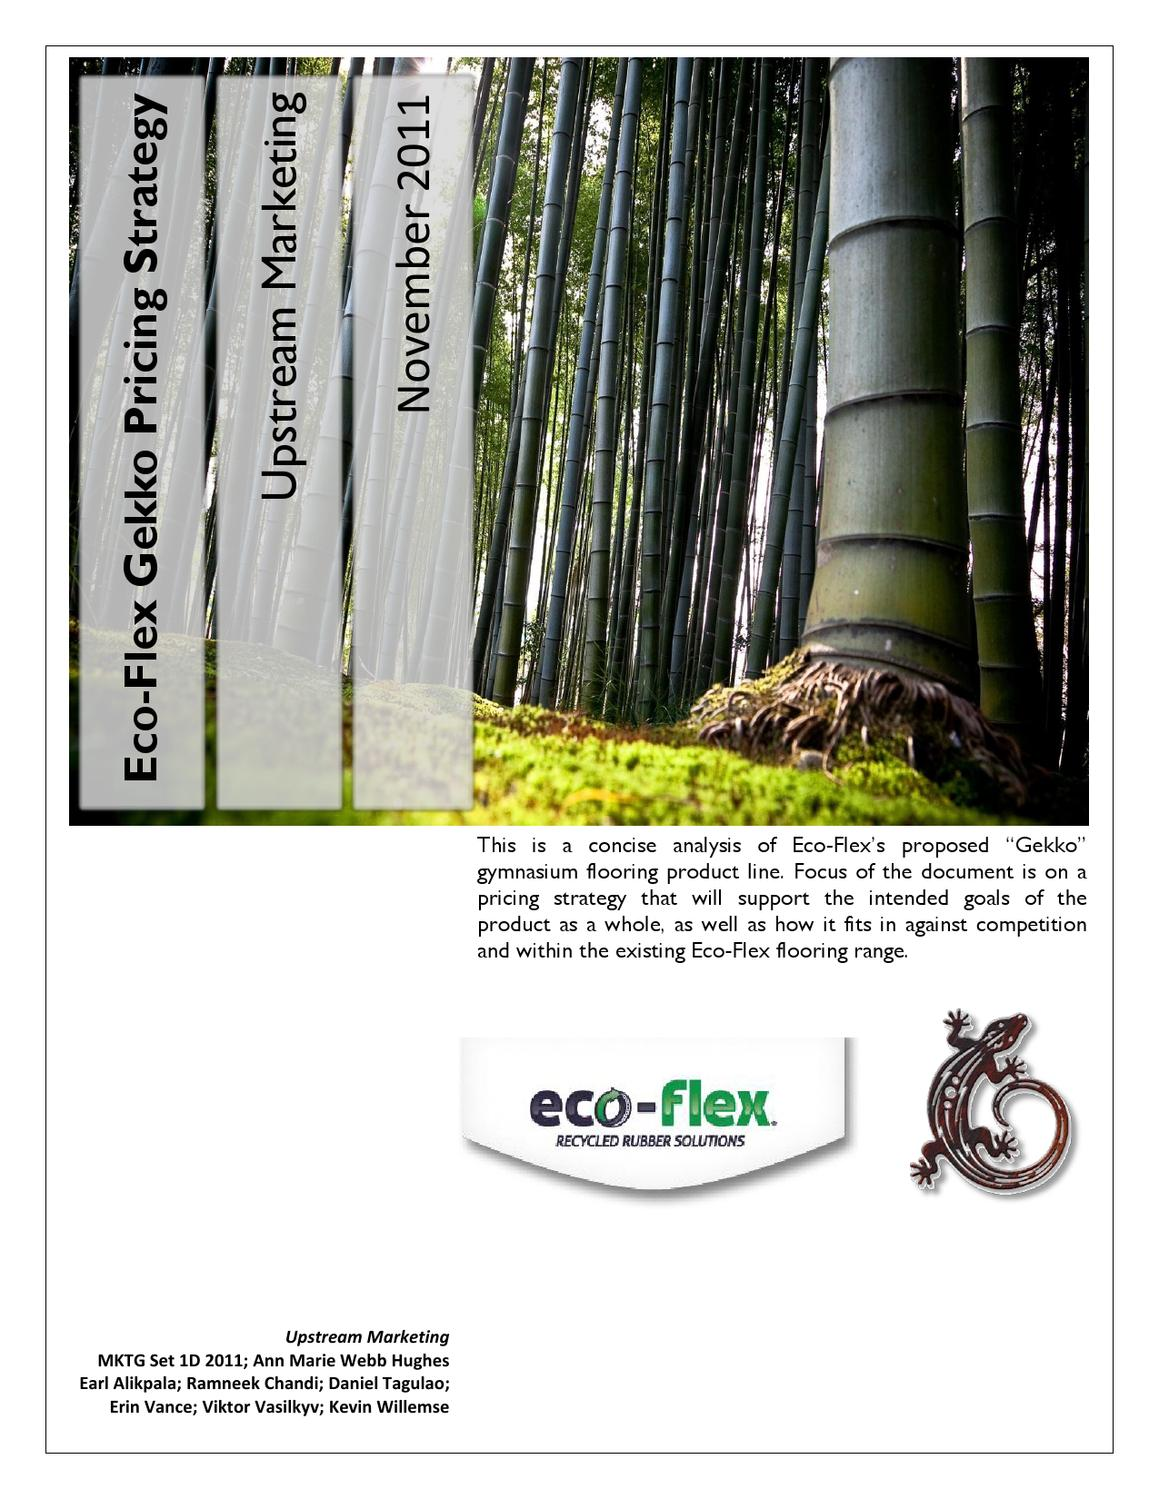 Marketing Campaign Proposal - Ecoflex